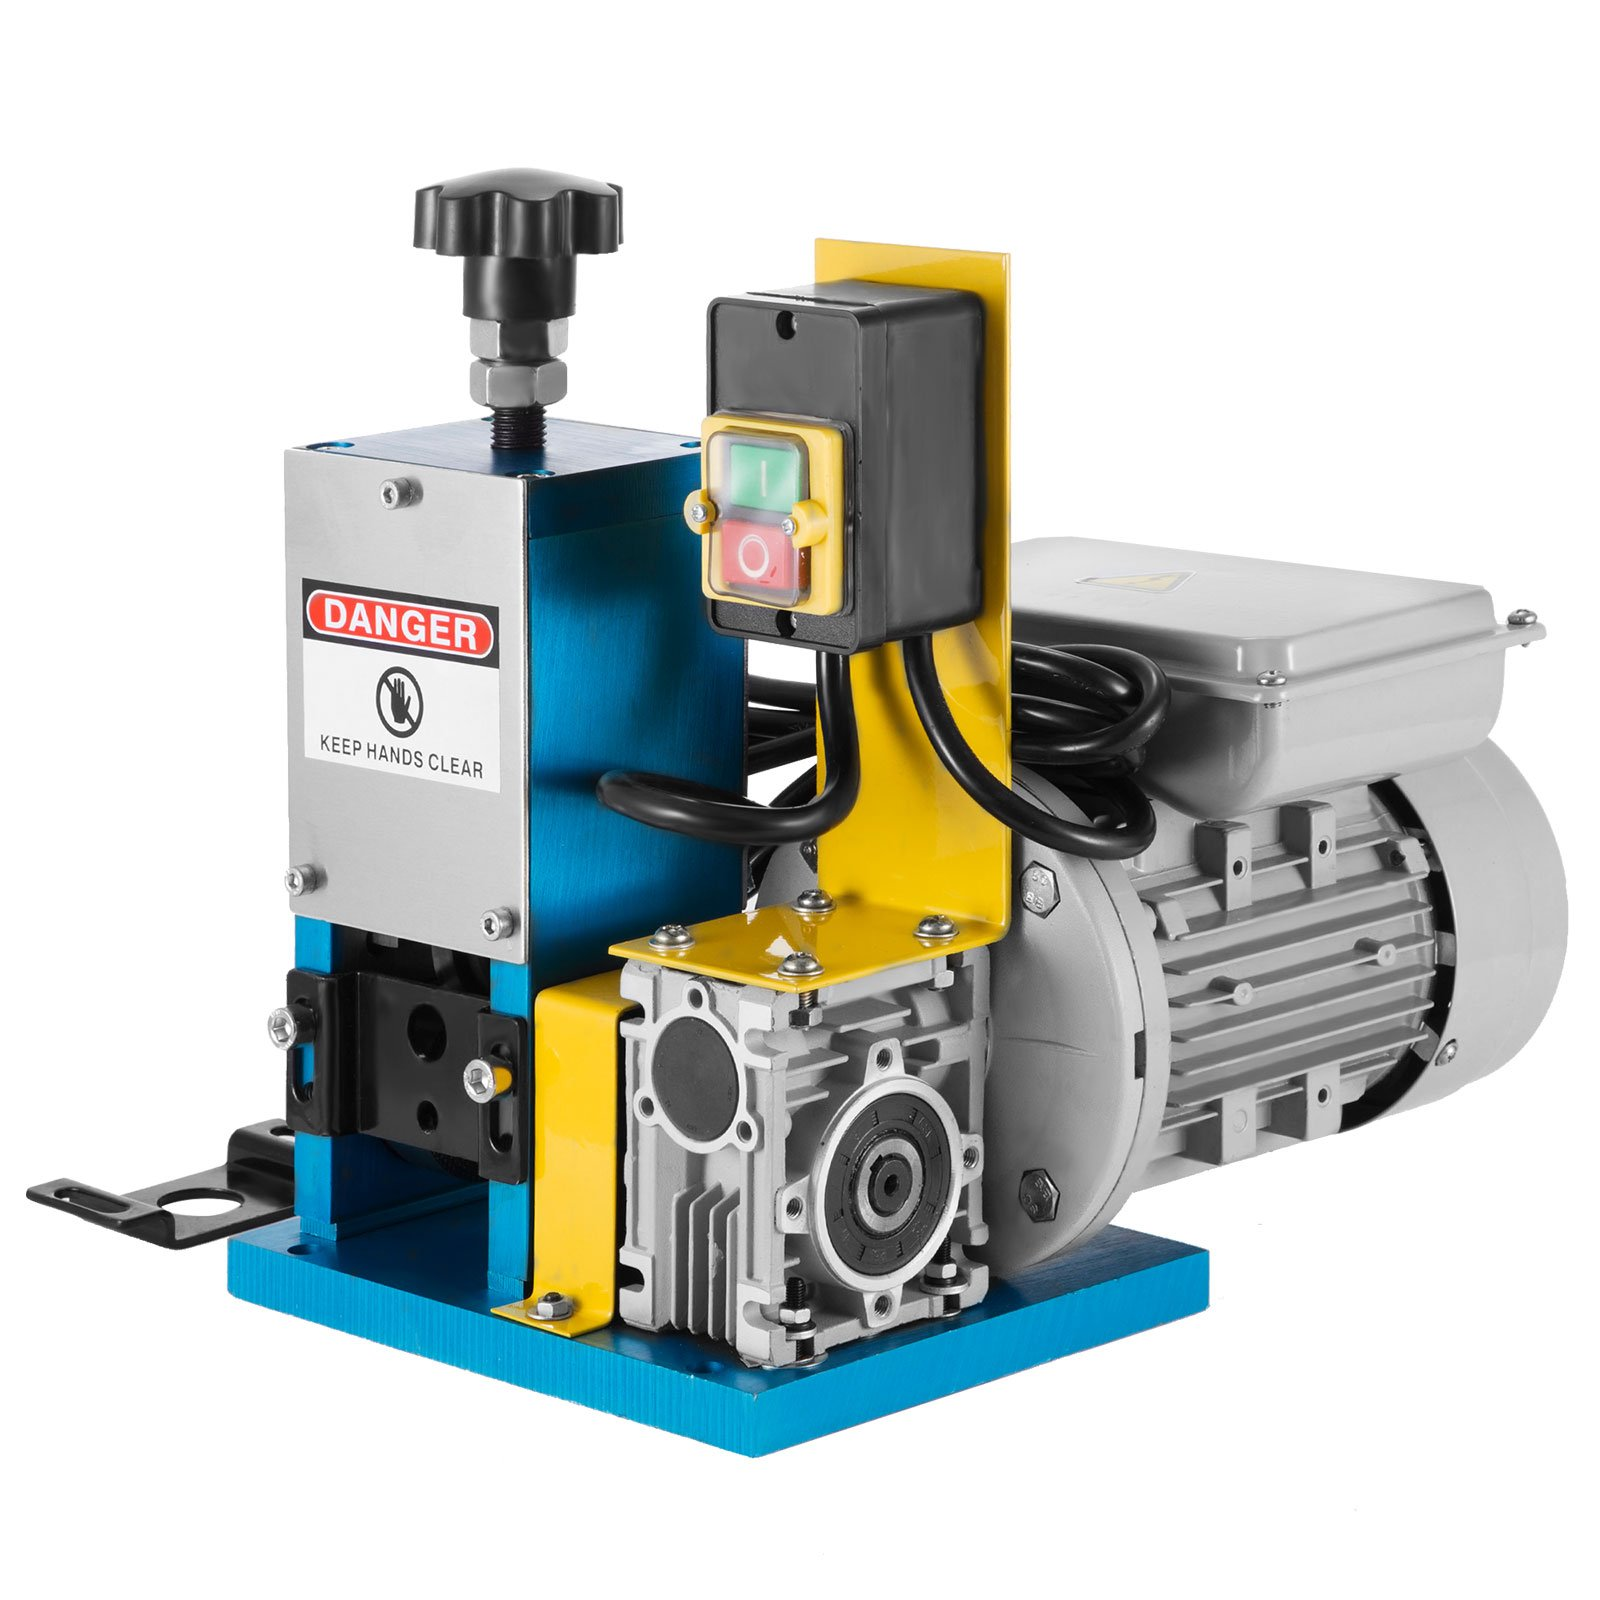 Happybuy Cable Wire Stripping Machine Φ1.5mm~Φ25mm Wire Stripping Machine 1 Channels Wire Stripping Machine Tool Manual Hand Cranked Industrial Wire Stripping Recycle (Blue)